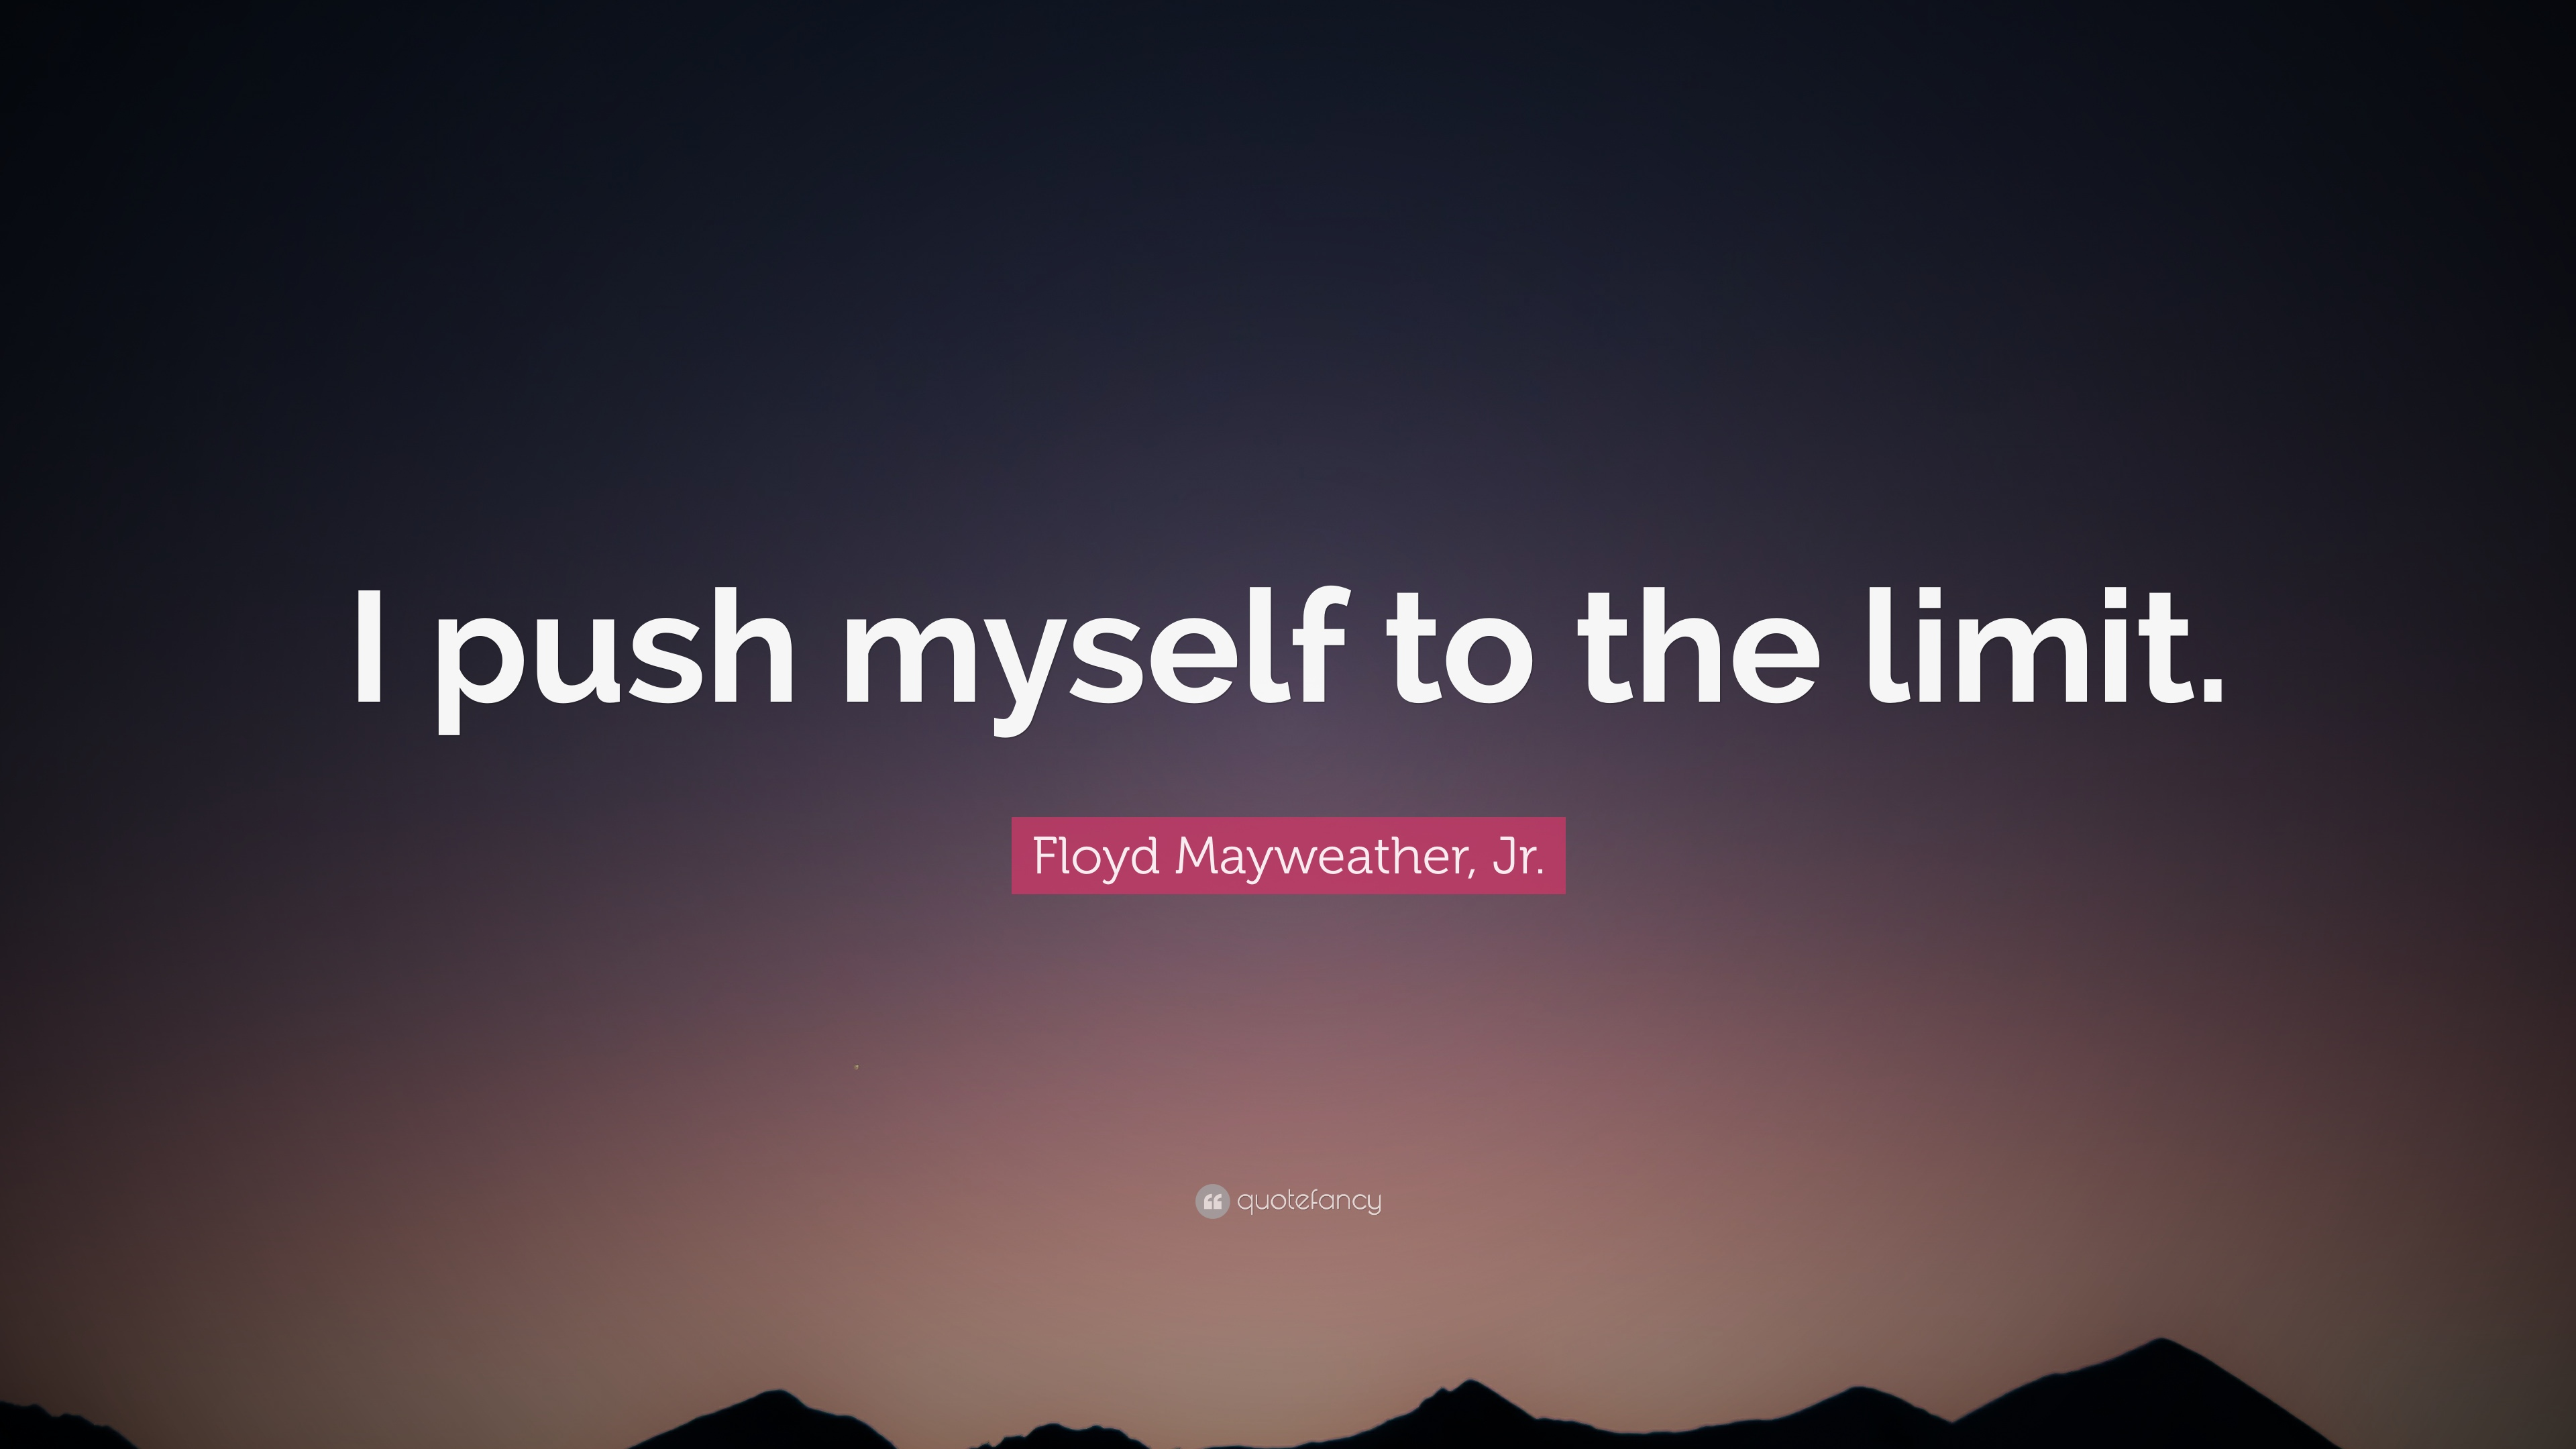 Floyd mayweather jr quote i push myself to the limit 12 floyd mayweather jr quote i push myself to the limit altavistaventures Images